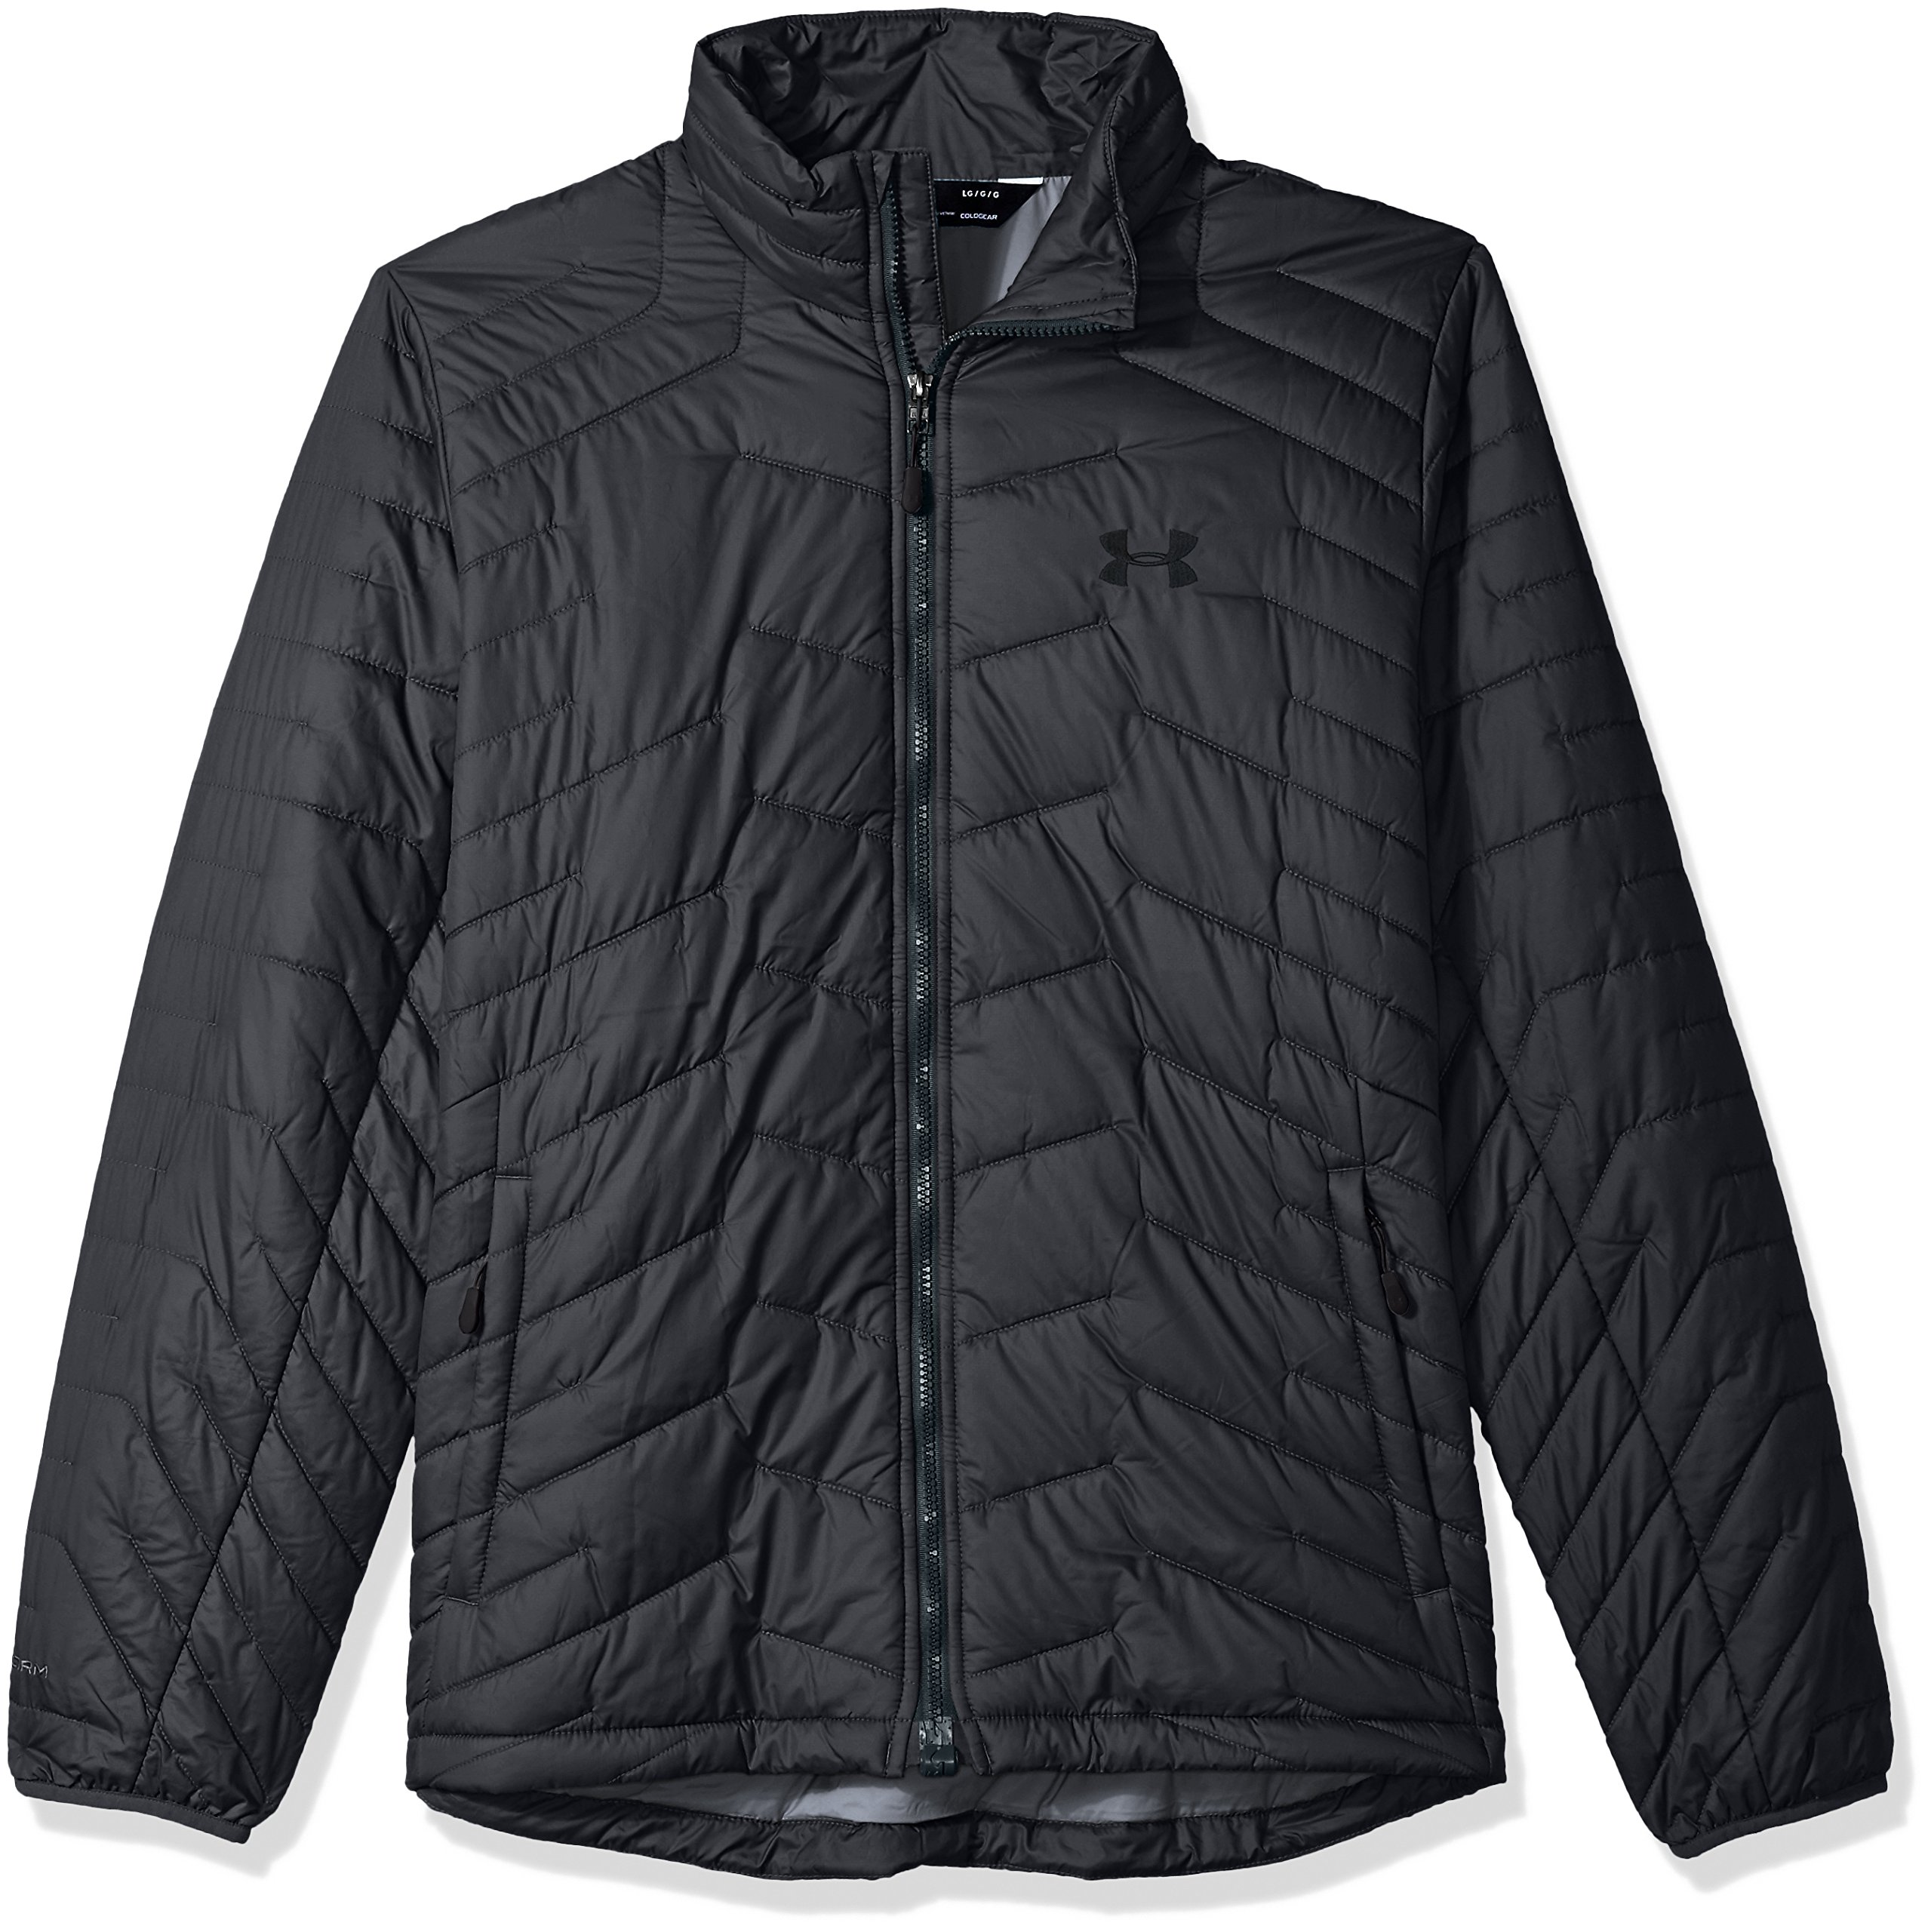 Under Armour Outerwear Men's Cold Gear Reactor Jacket, Carbon Heather/Black, X-Large by Under Armour